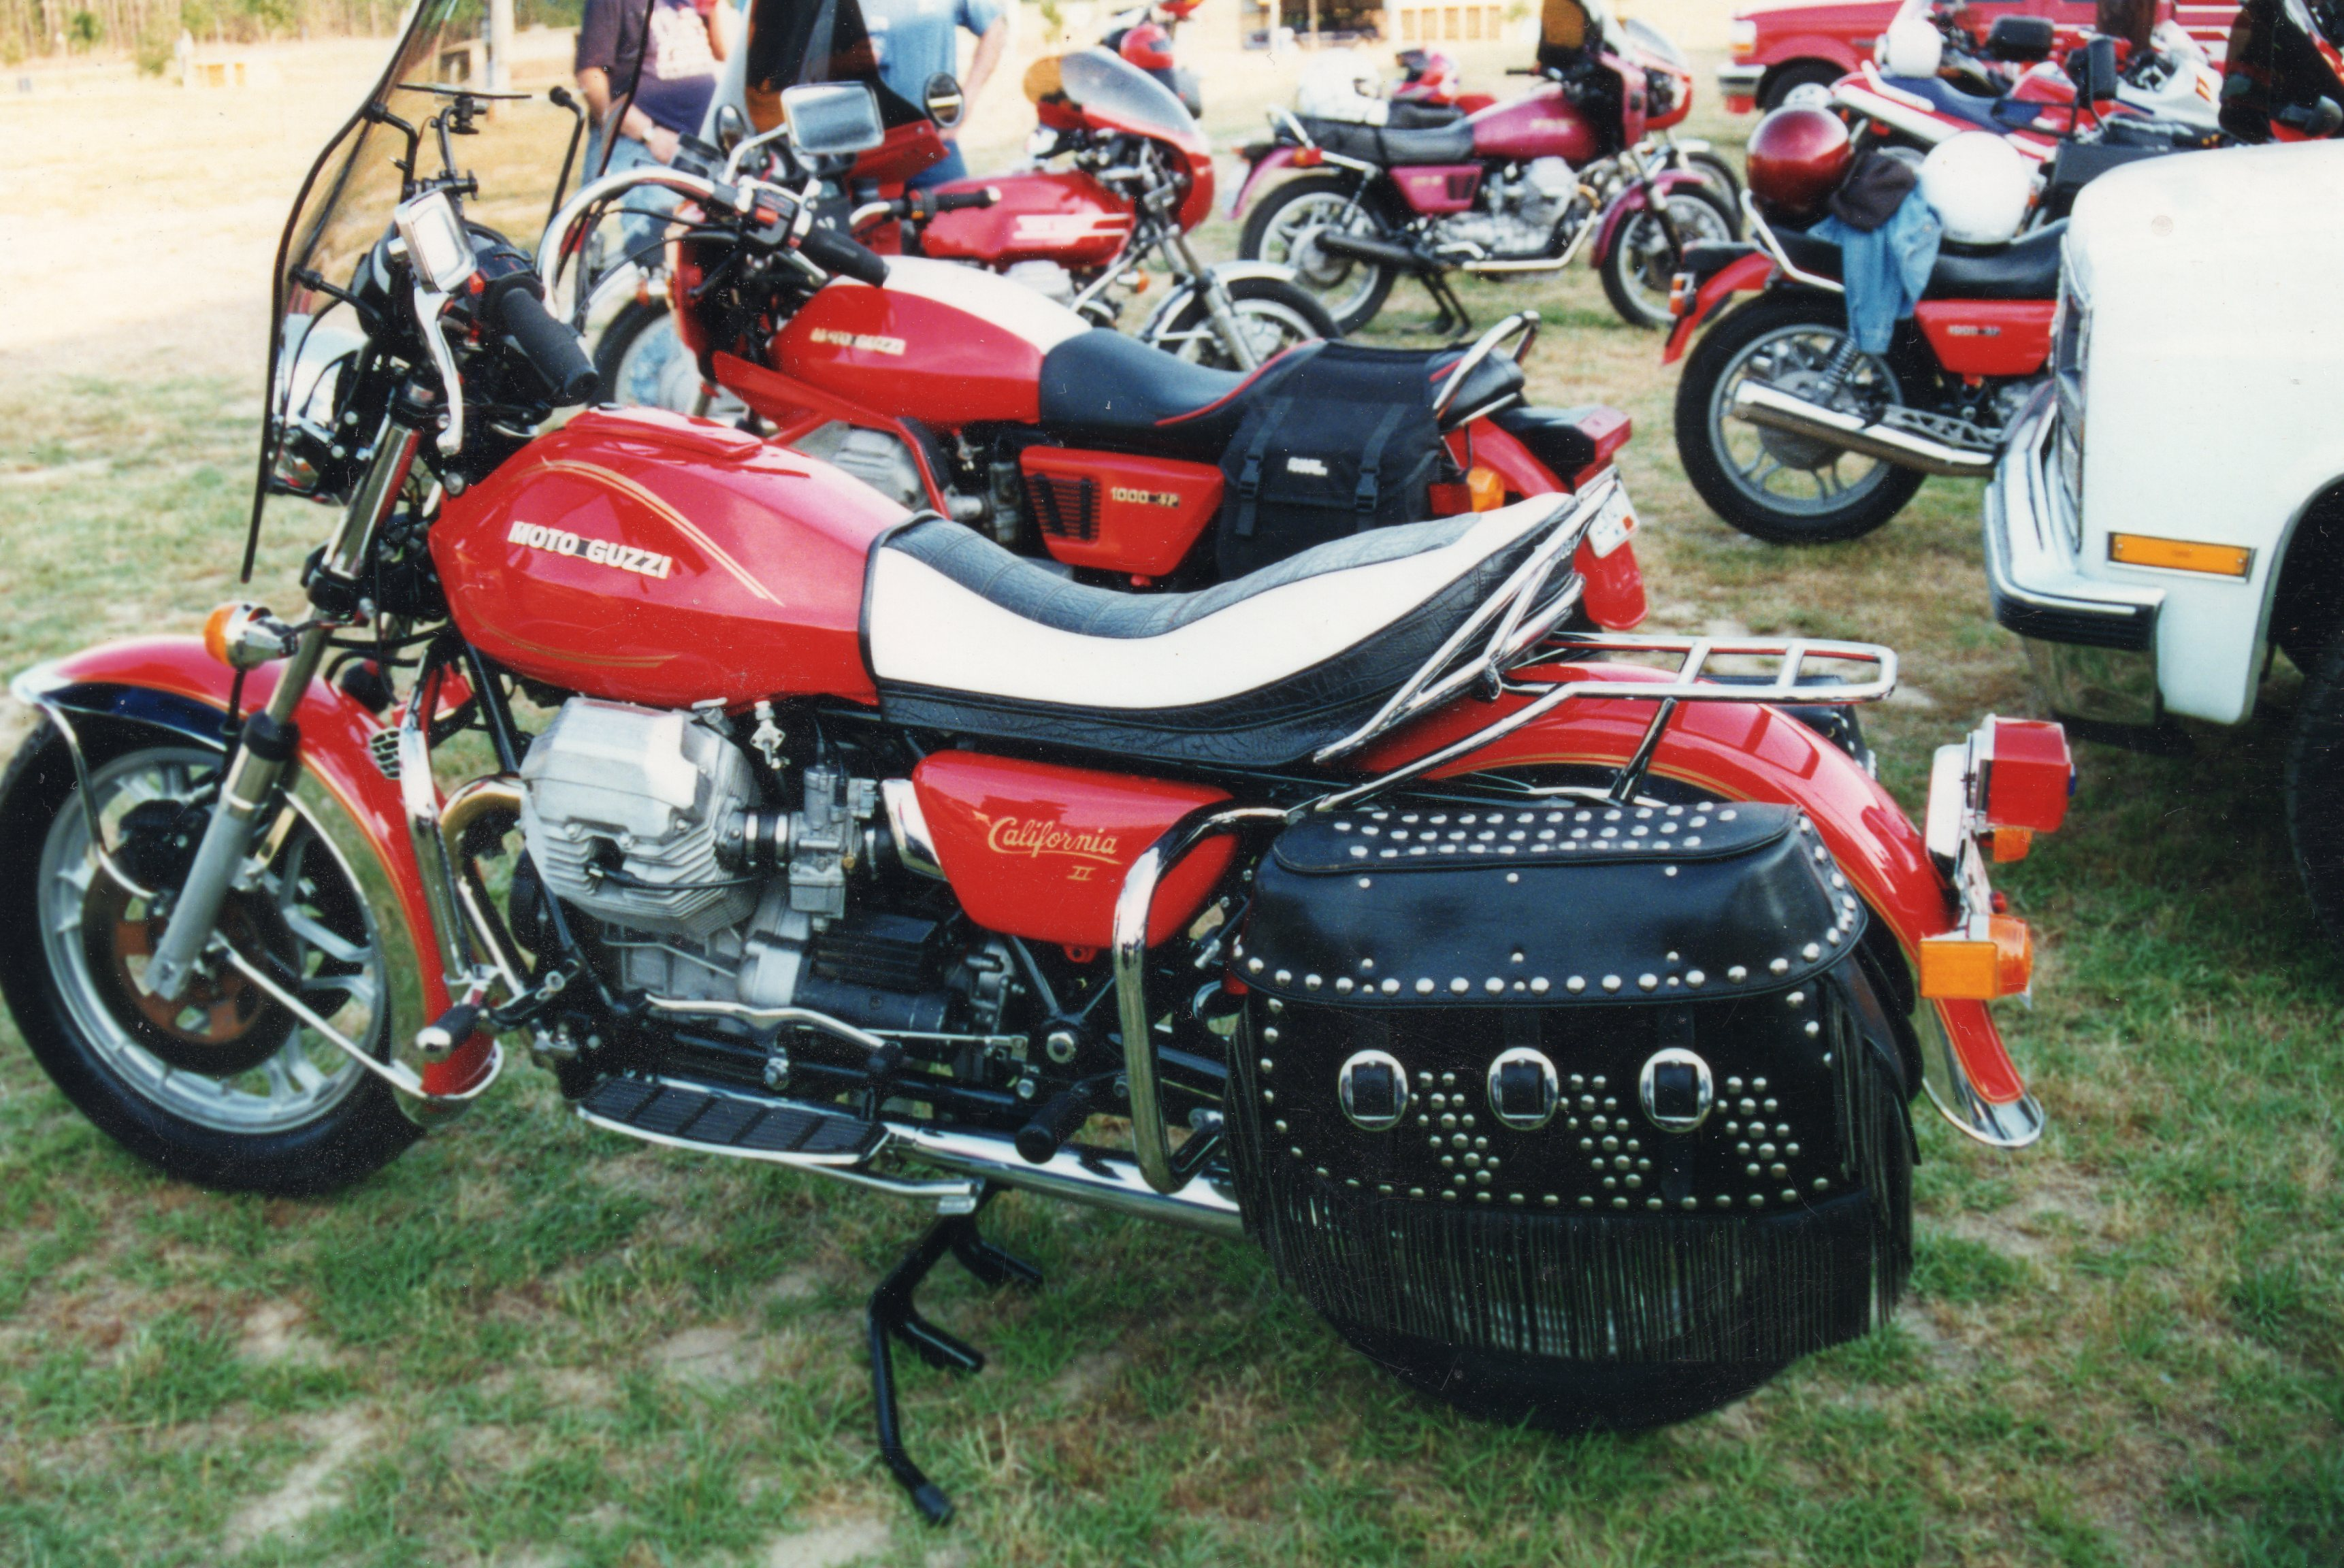 Moto Guzzi California 75 images #108443